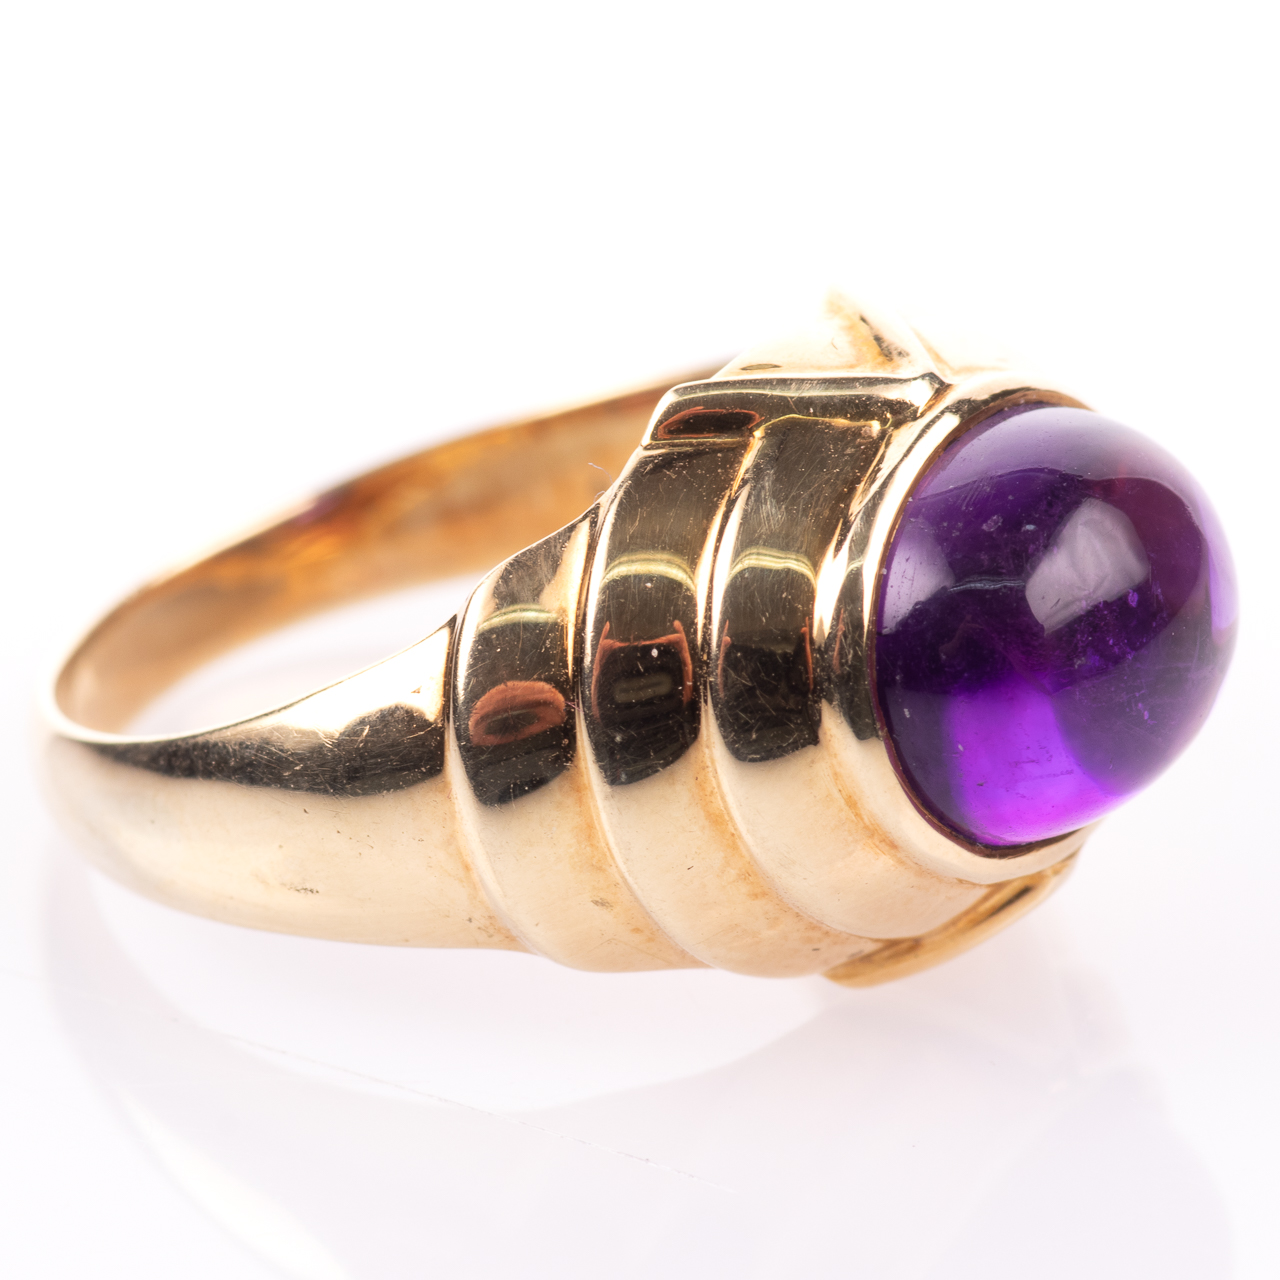 14ct Gold Amethyst Cabochon Ring Egyptian Revival Style - Image 7 of 9